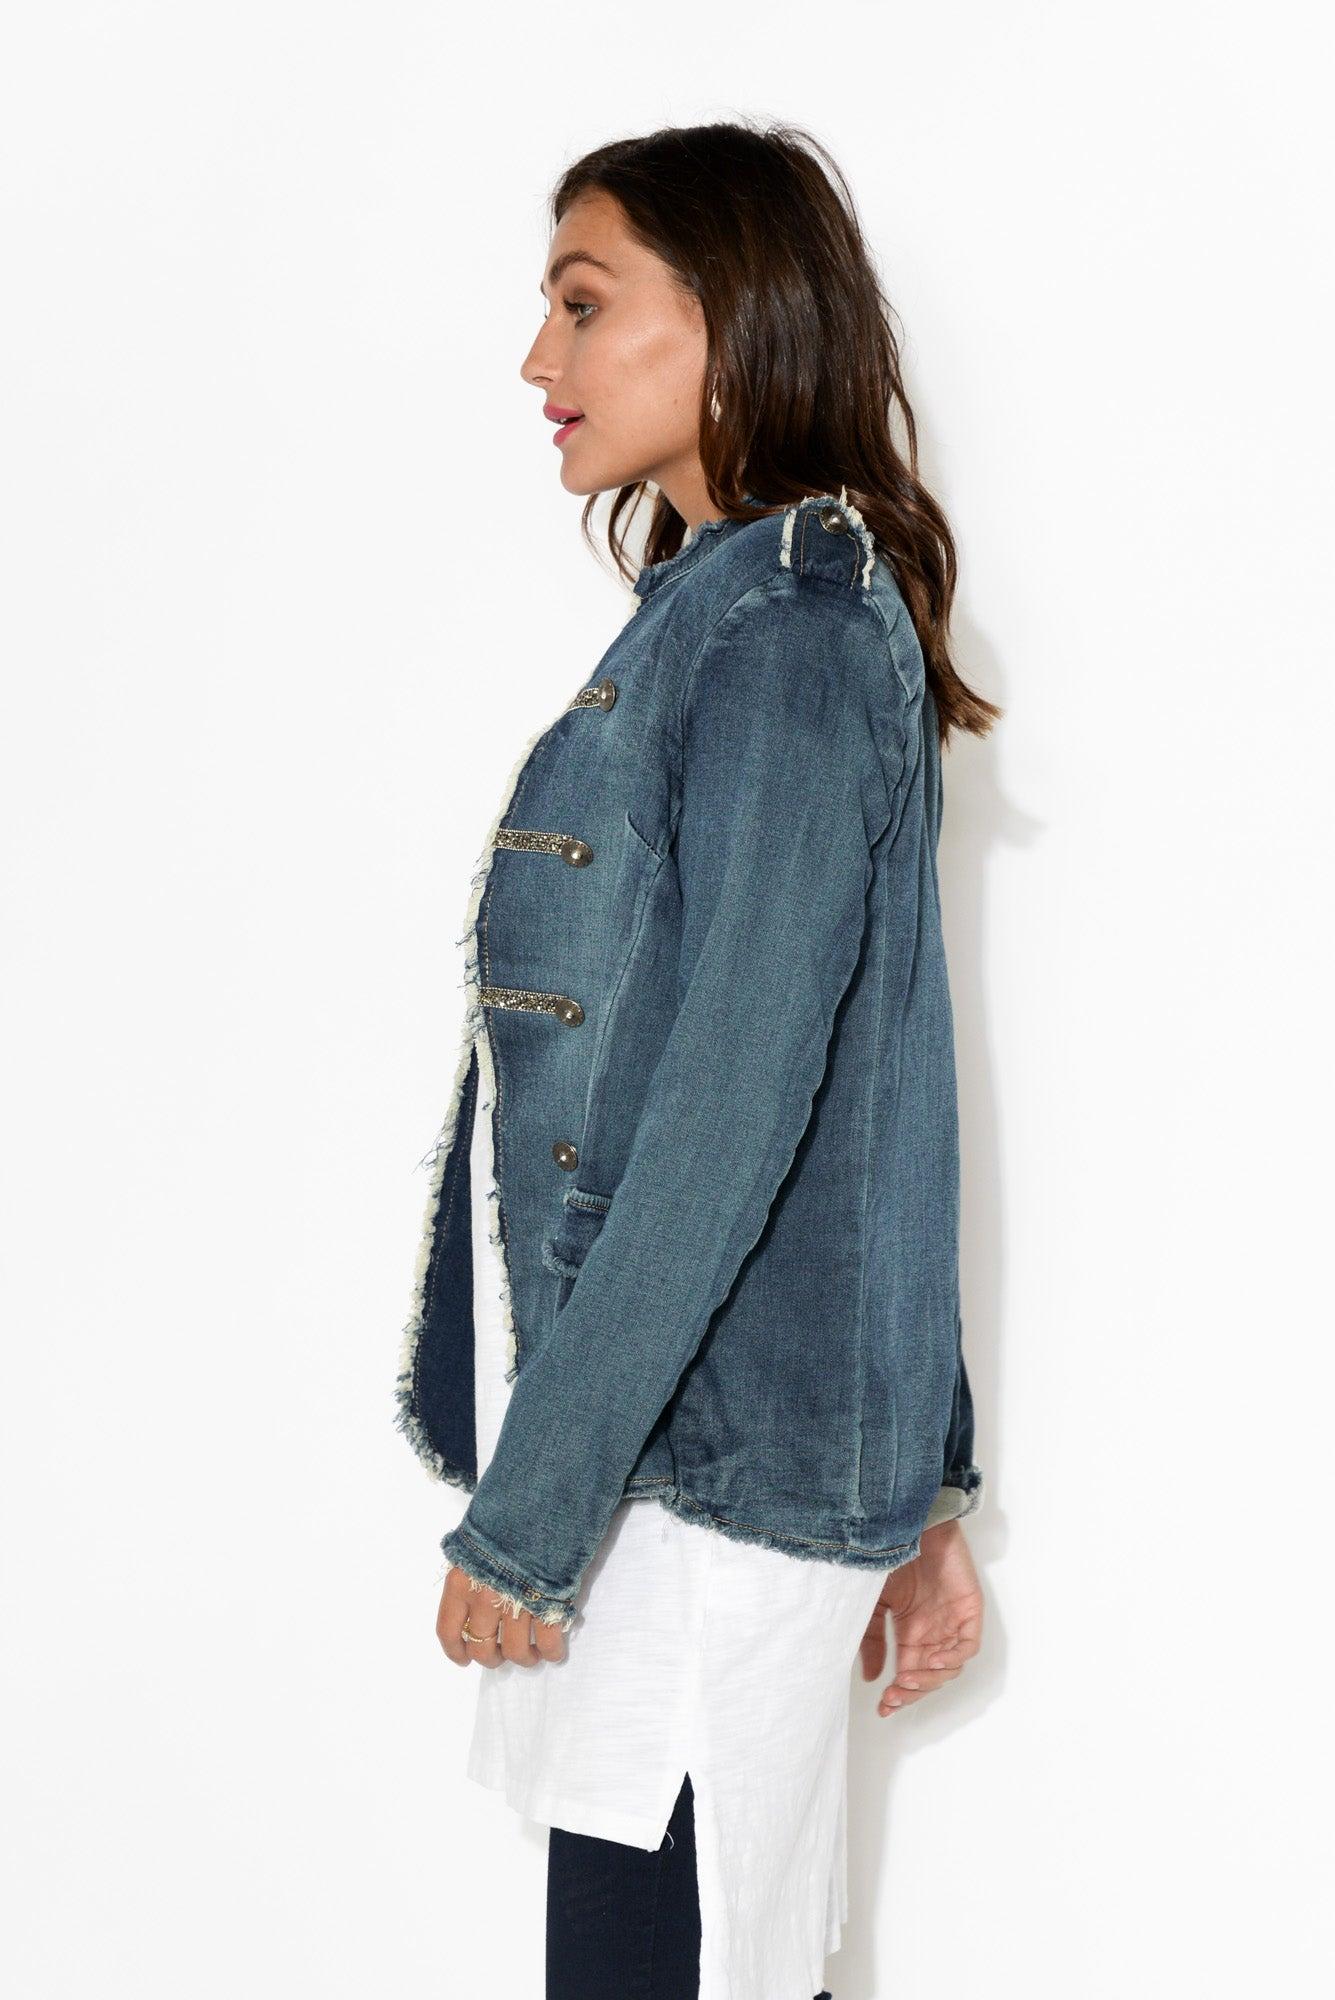 Domenica Dark Denim Cotton Military Jacket